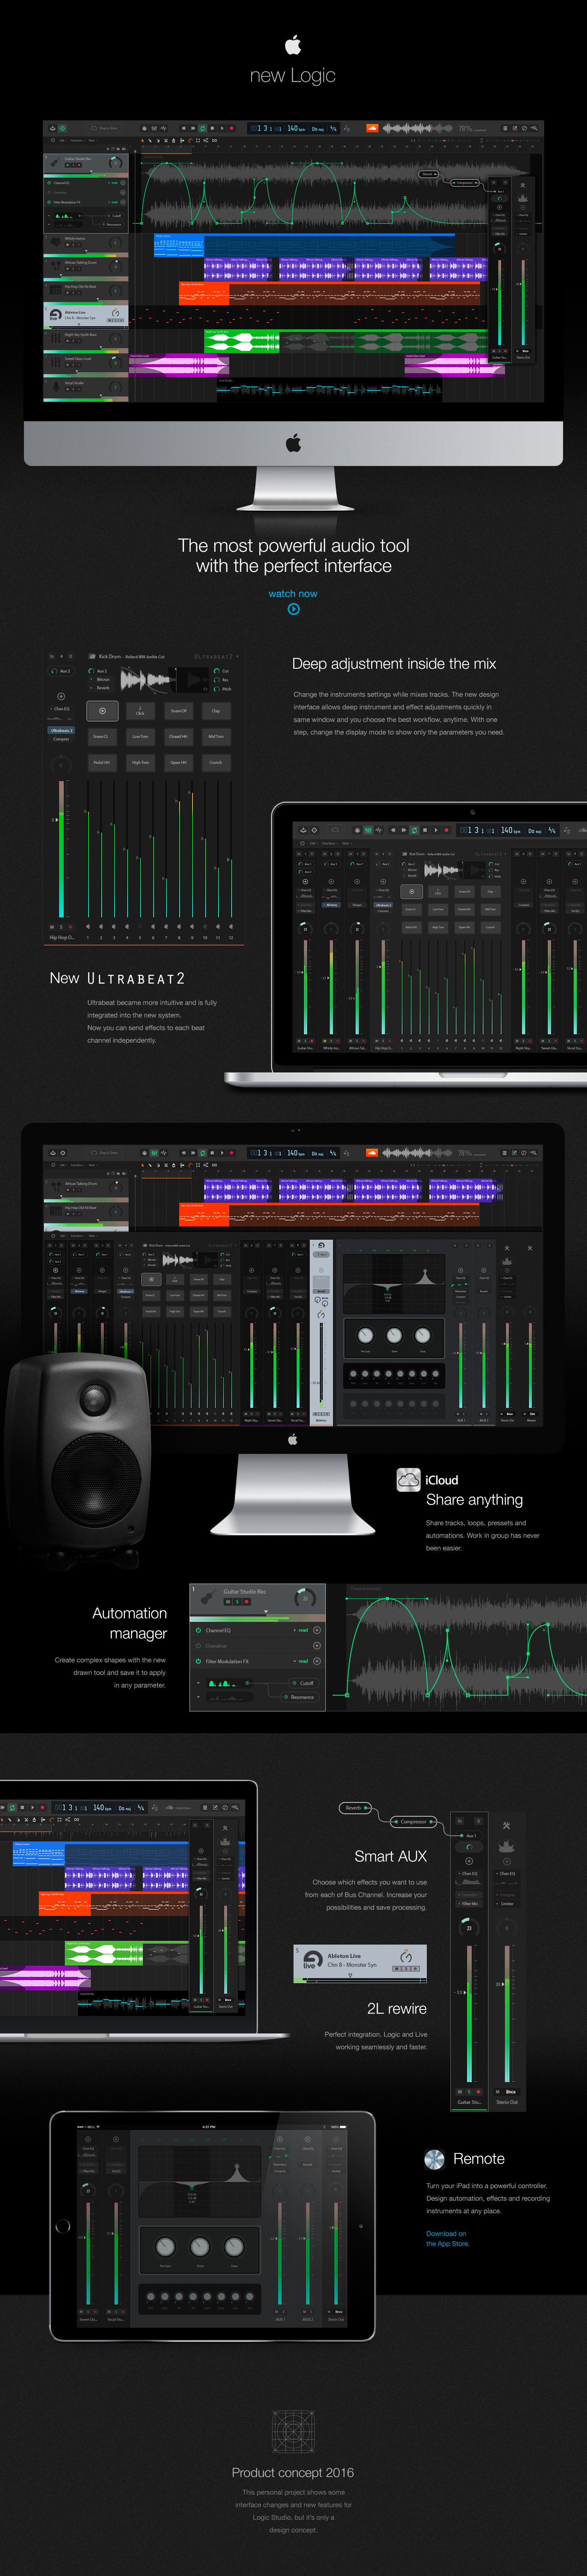 Conceito do Logic Pro